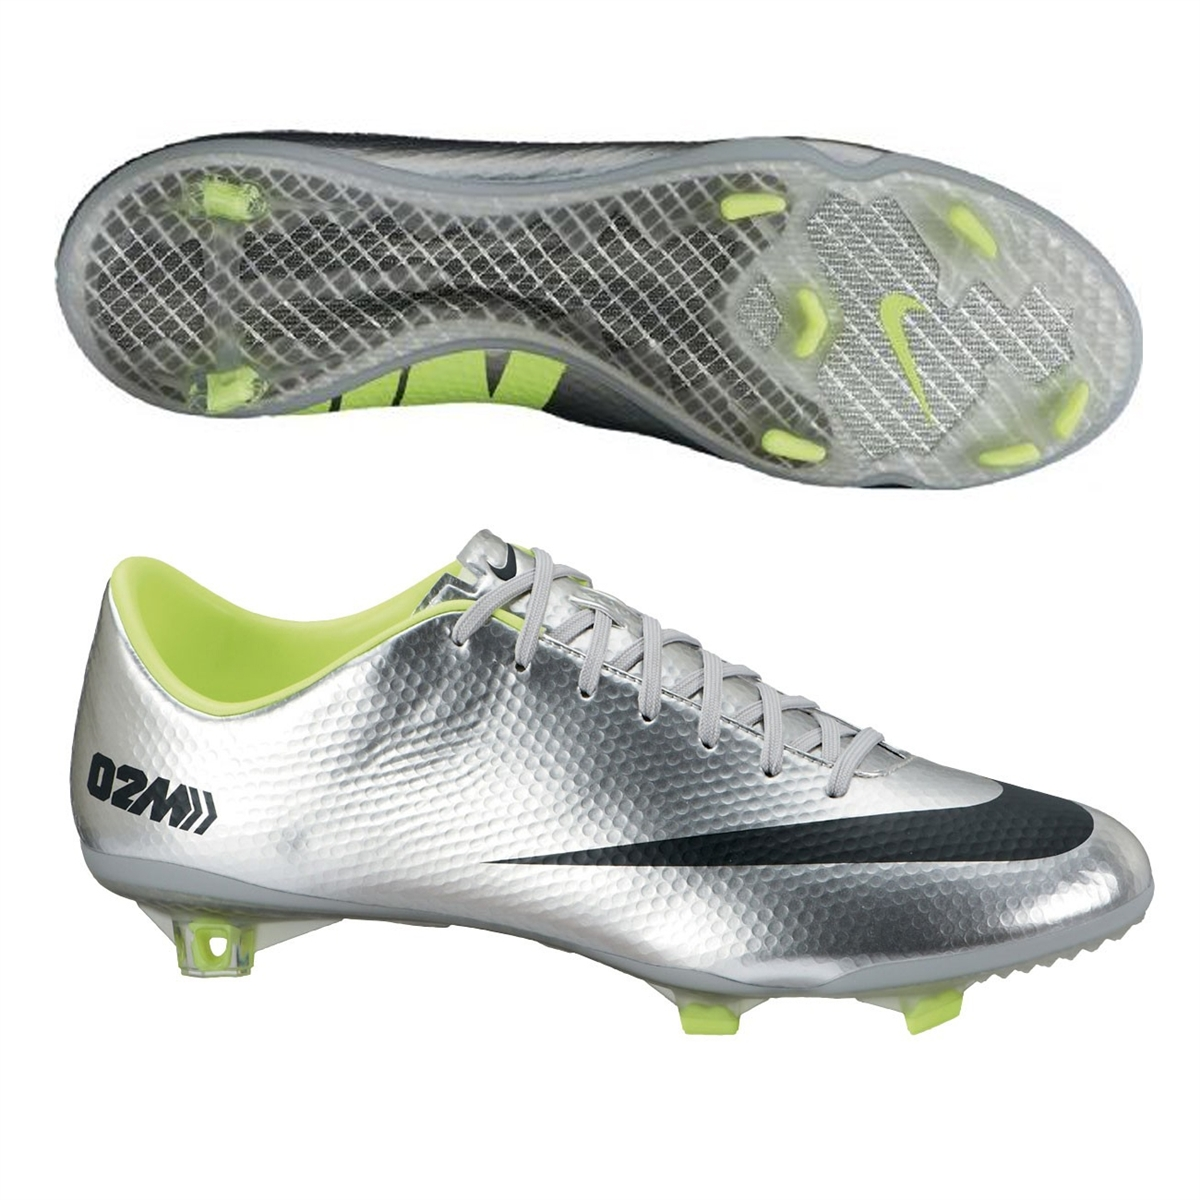 d3f8687442e nike vapor soccer shoes on sale   OFF76% Discounts